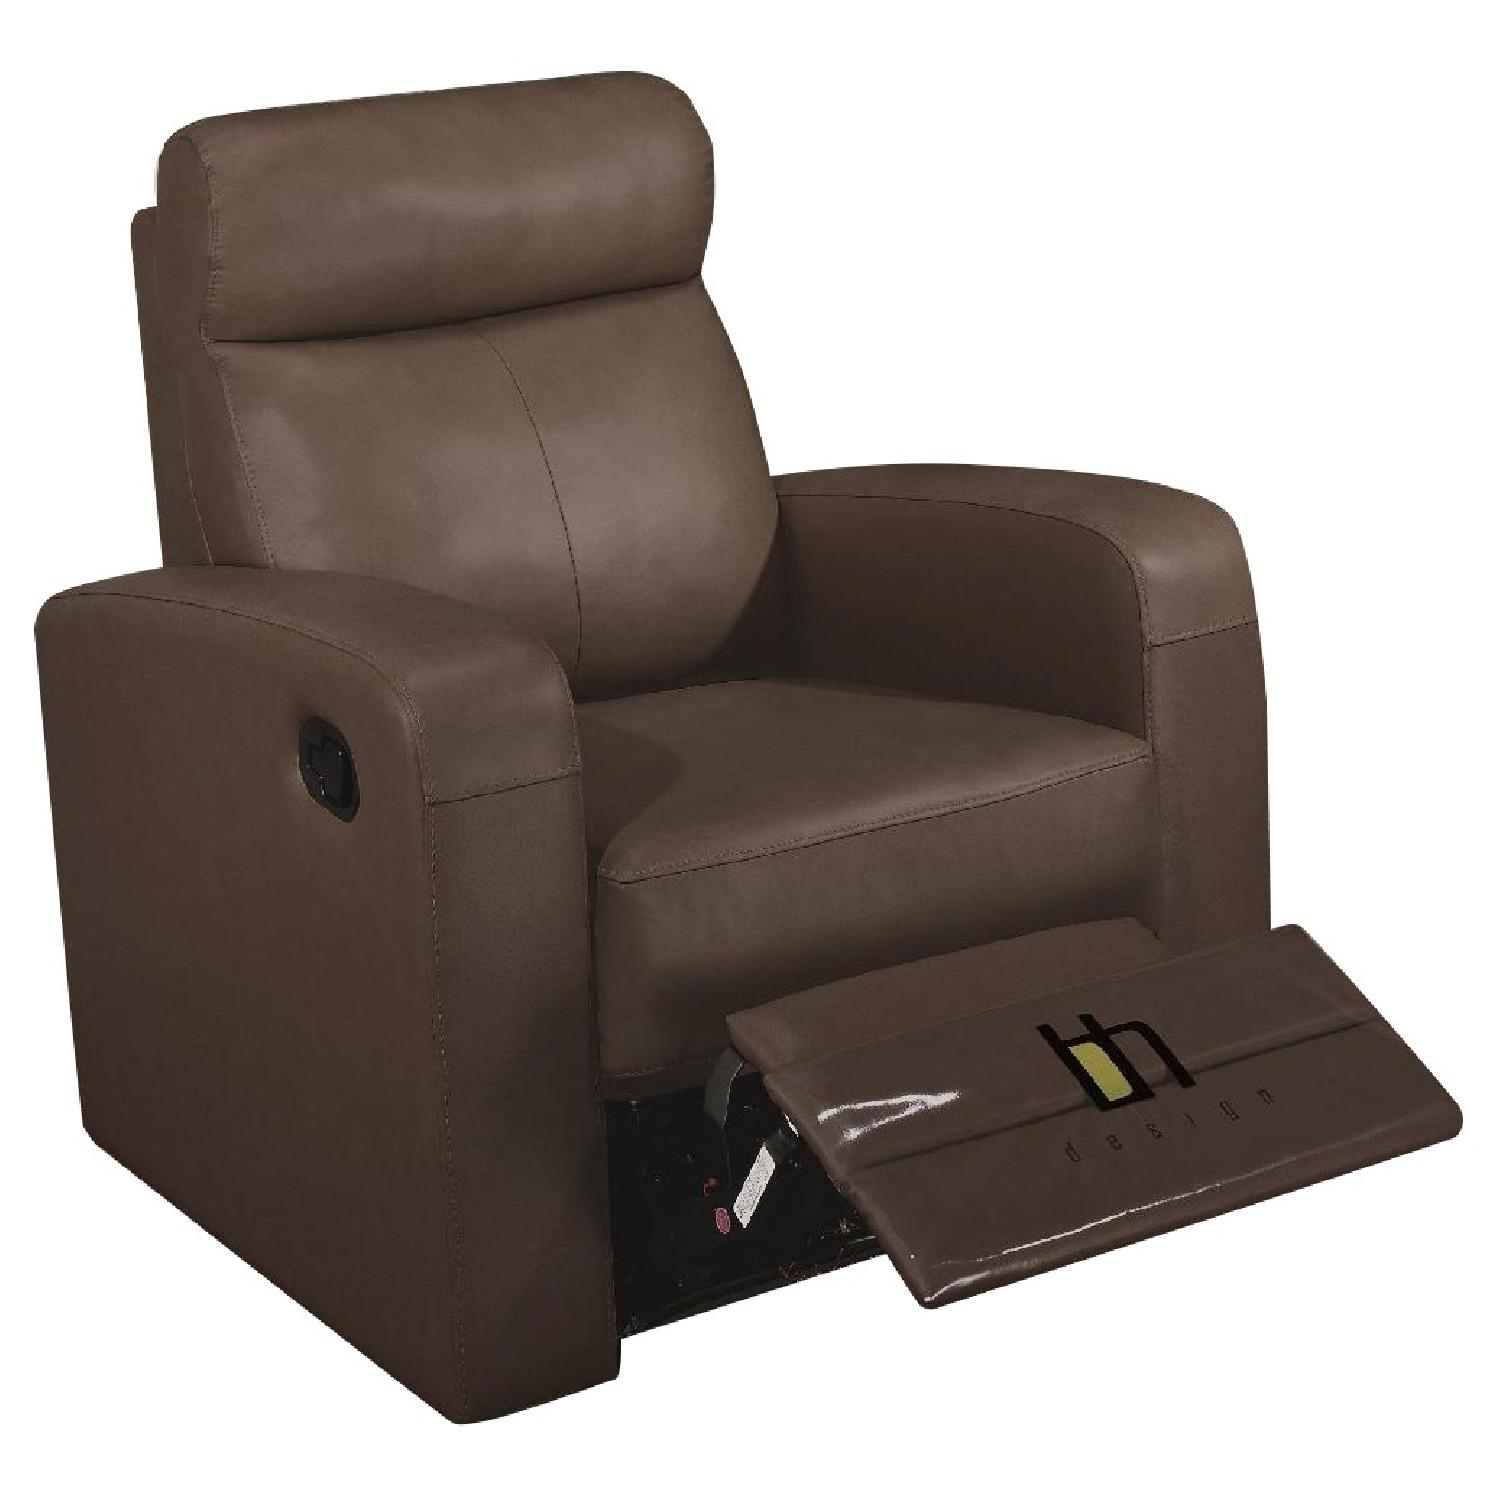 Apartment Size Recliner Chair in Brown Top Grain - AptDeco